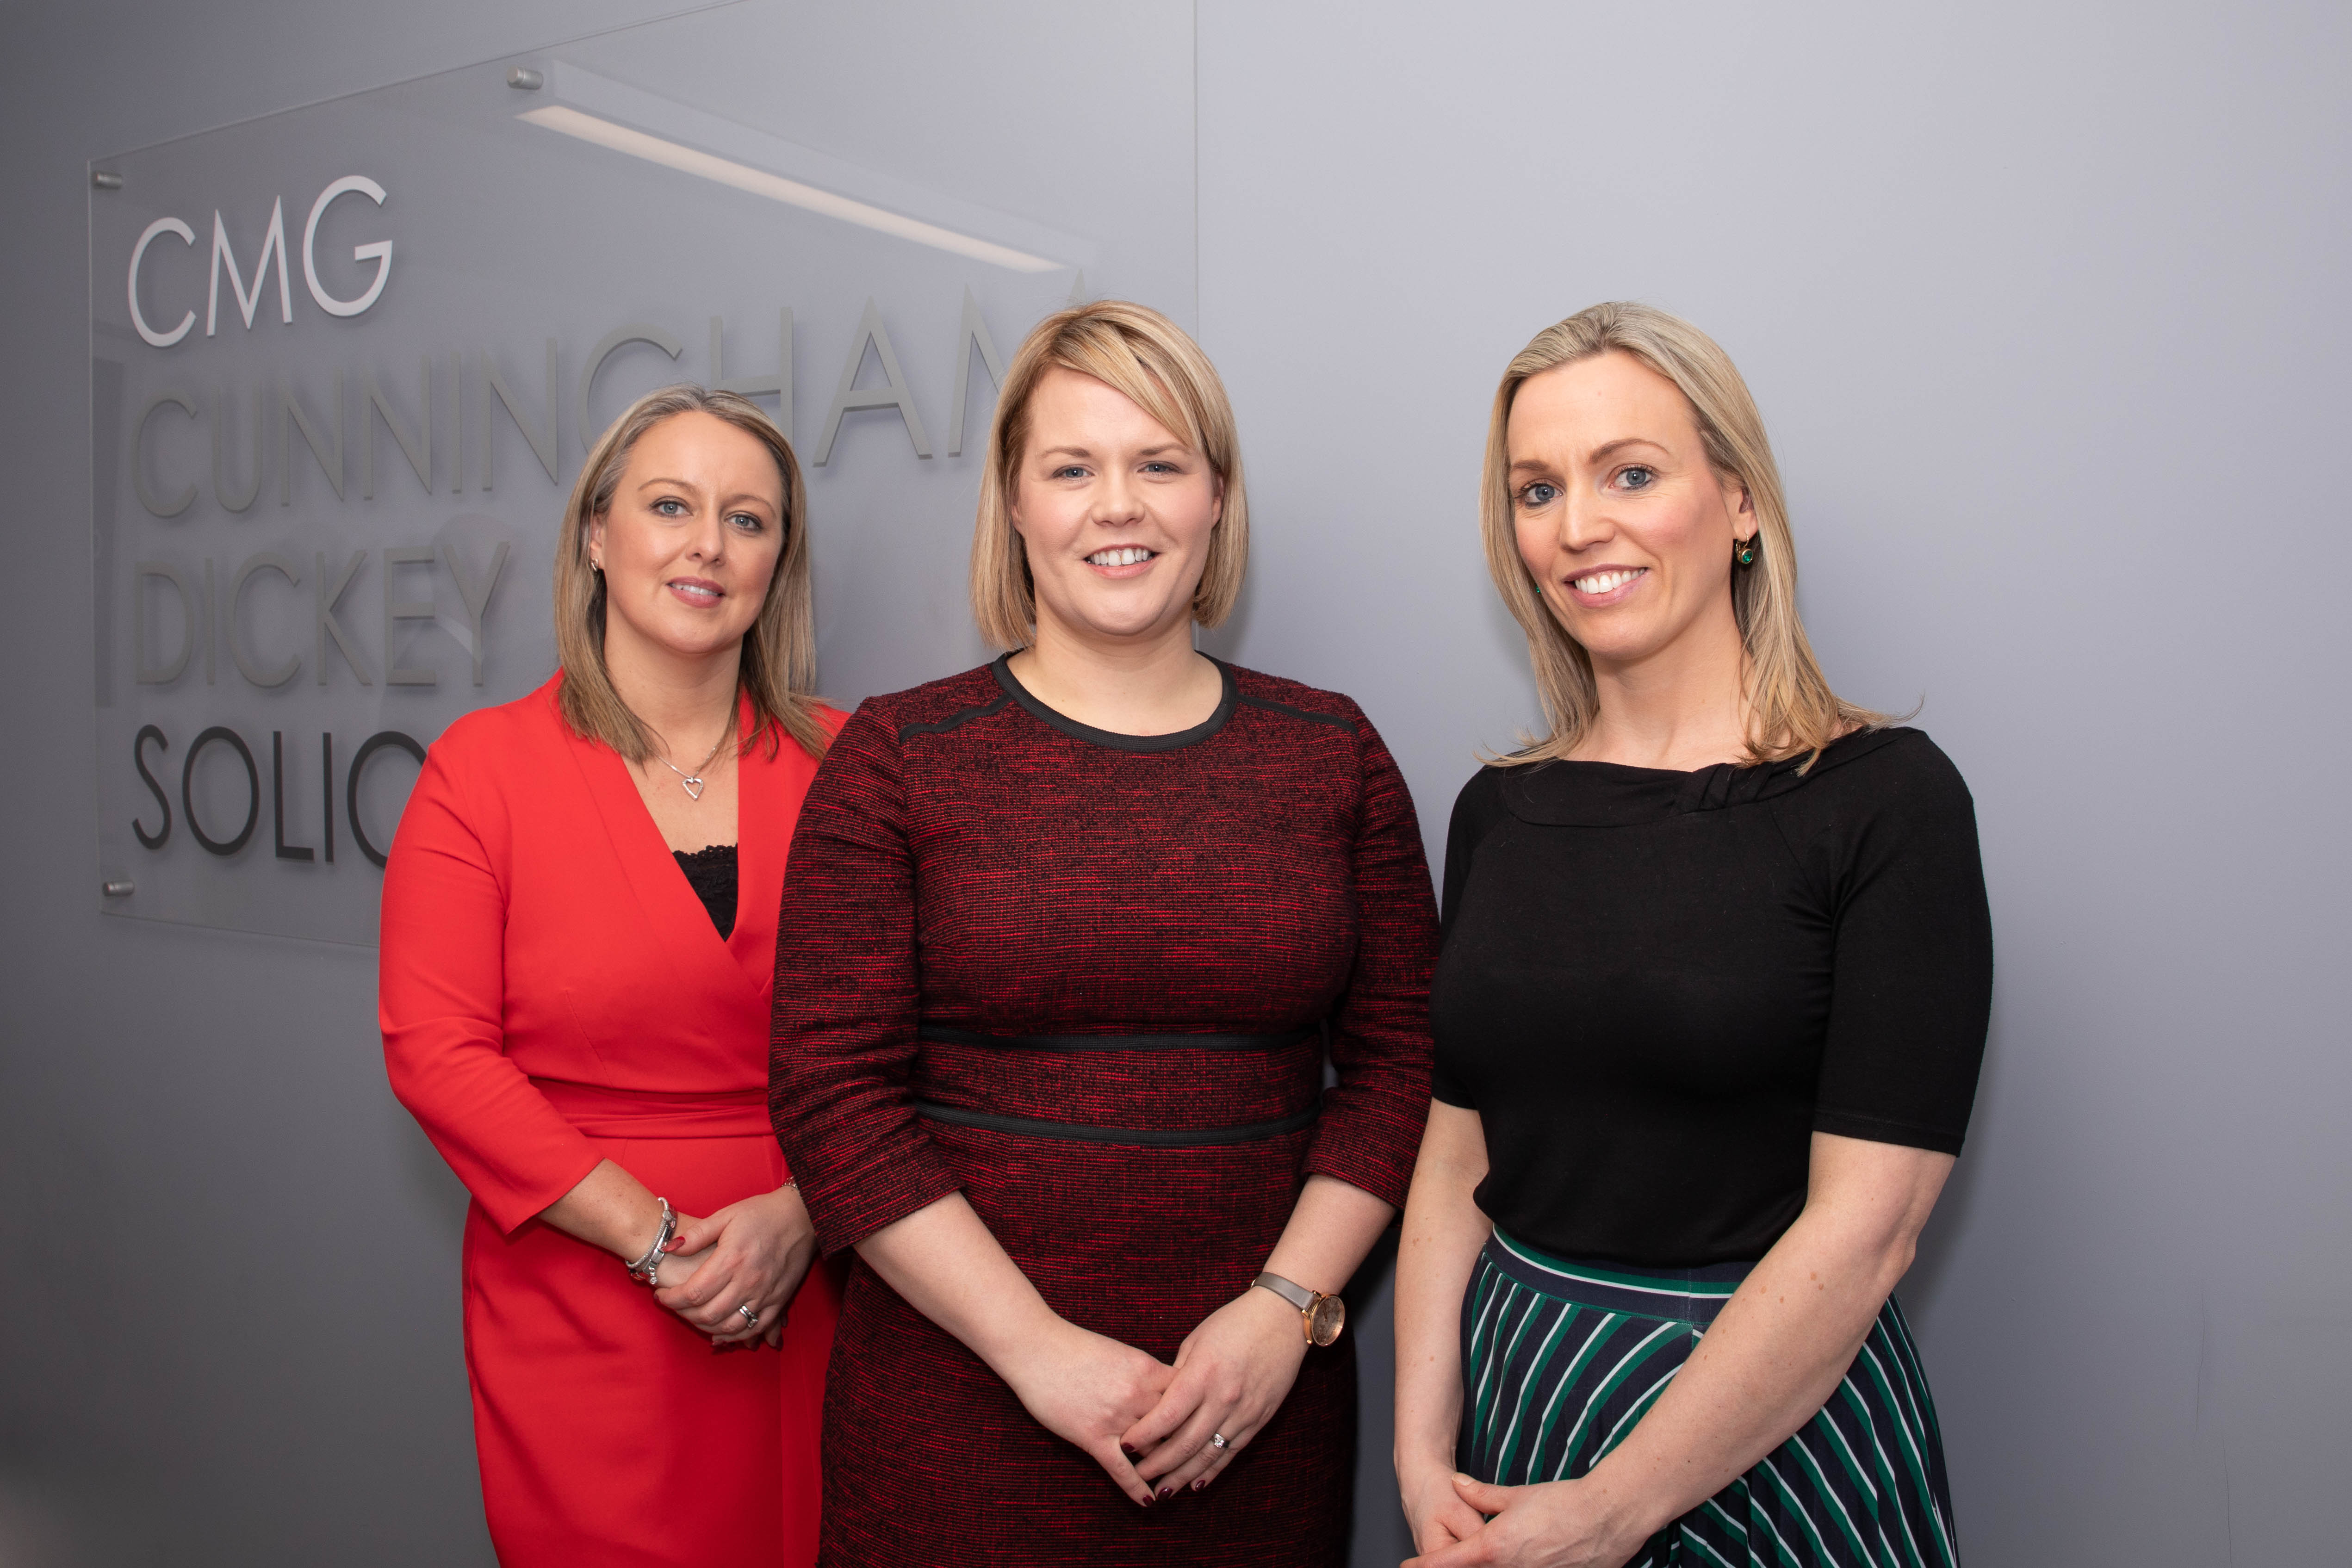 corporate office launch event - three professional women